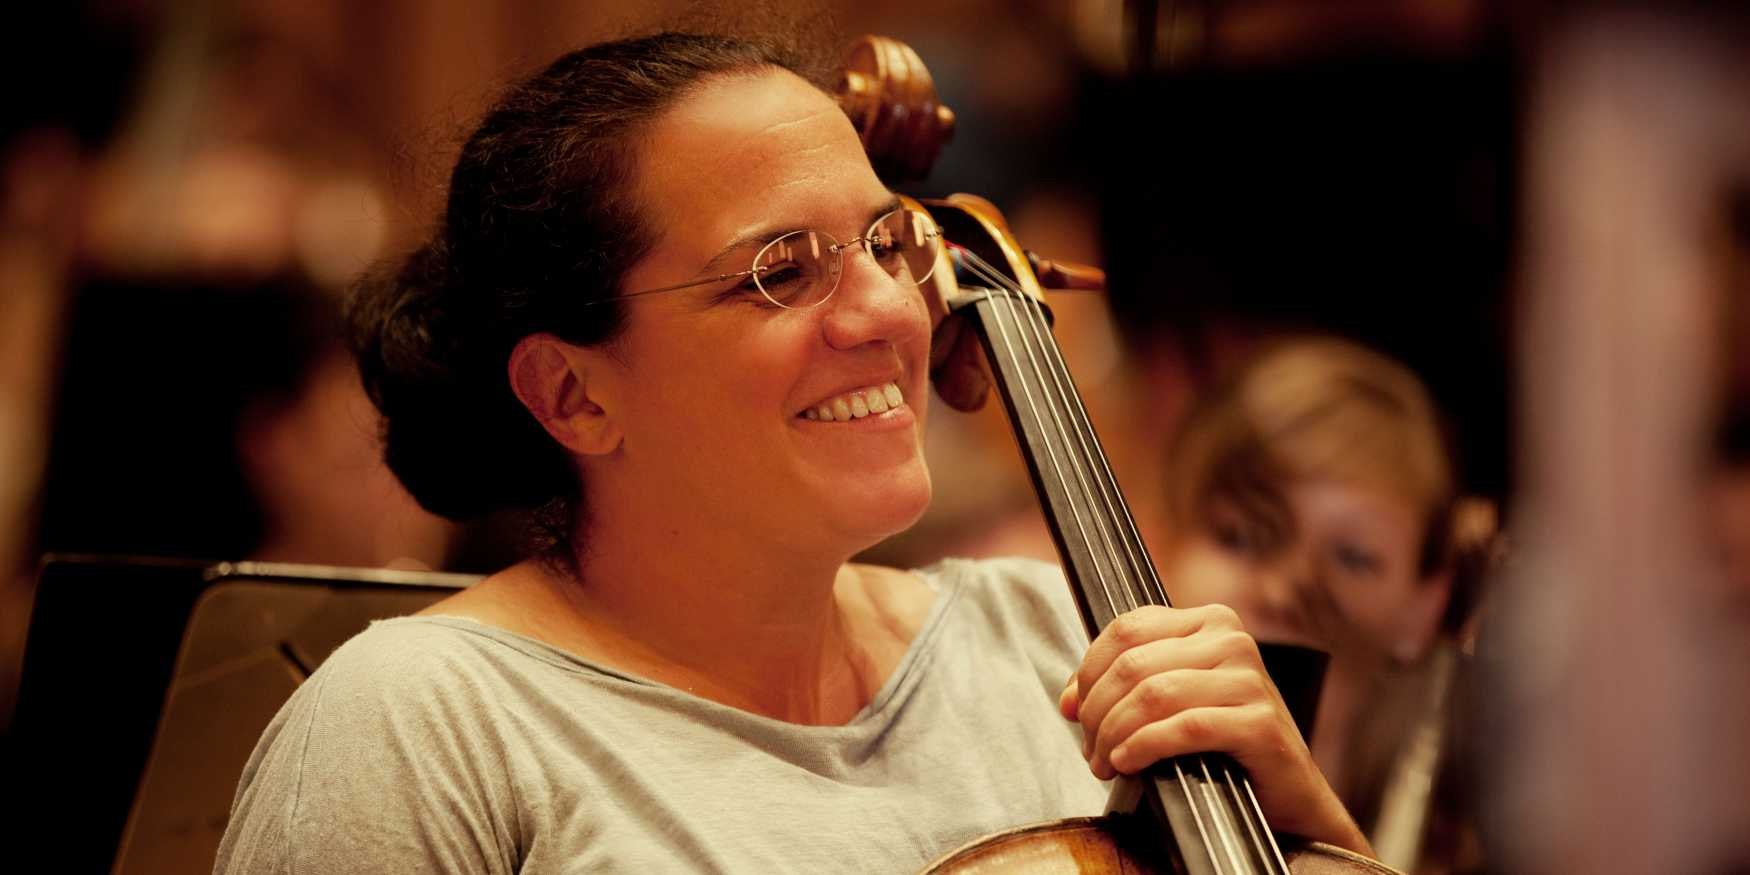 Julia Schreyvogel, Cello